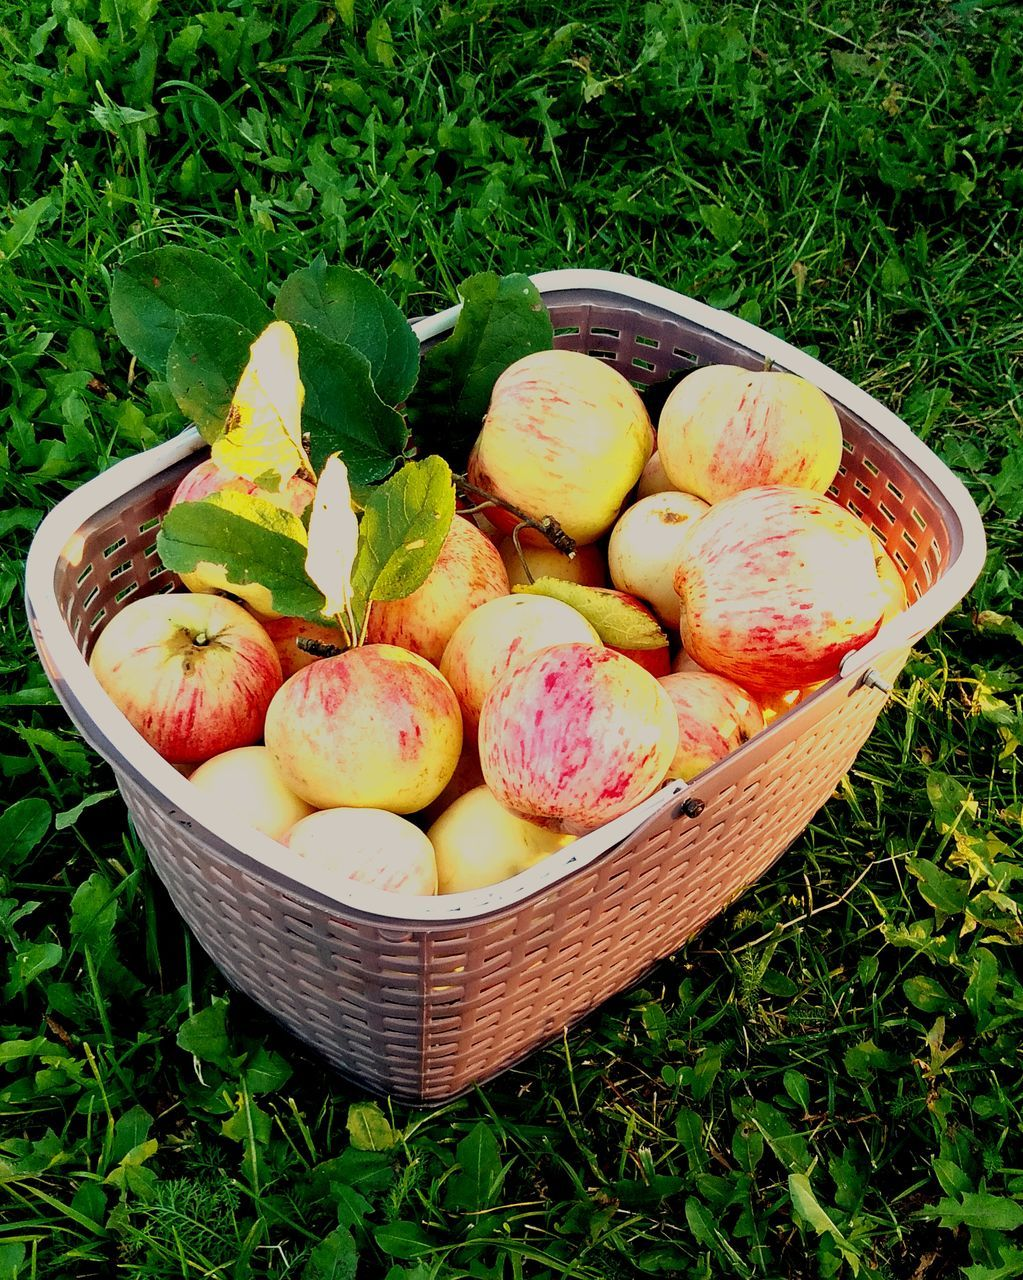 HIGH ANGLE VIEW OF FRESH FRUITS IN BASKET ON FIELD